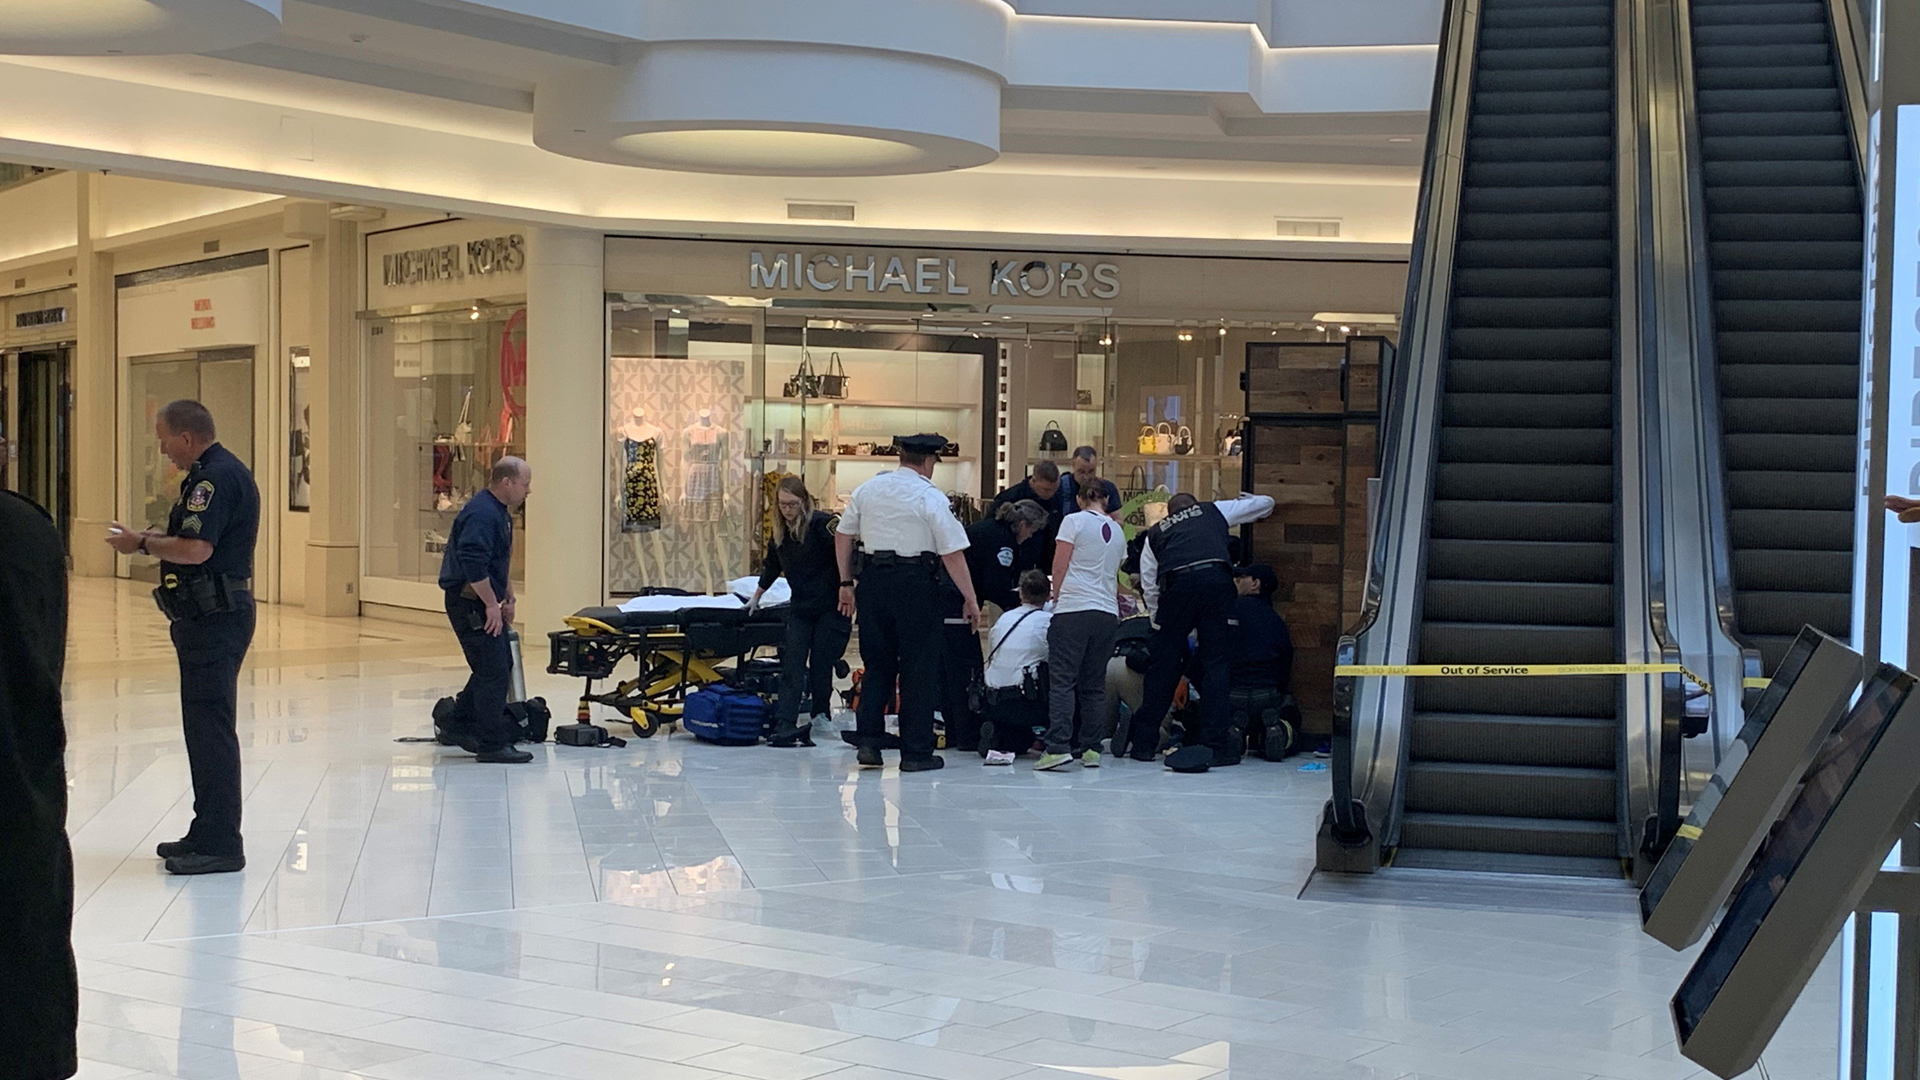 A child was rushed to a hospital after reportedly being thrown from a balcony at the Mall of America, and one person has been taken into custody. (Credit: WCCO)